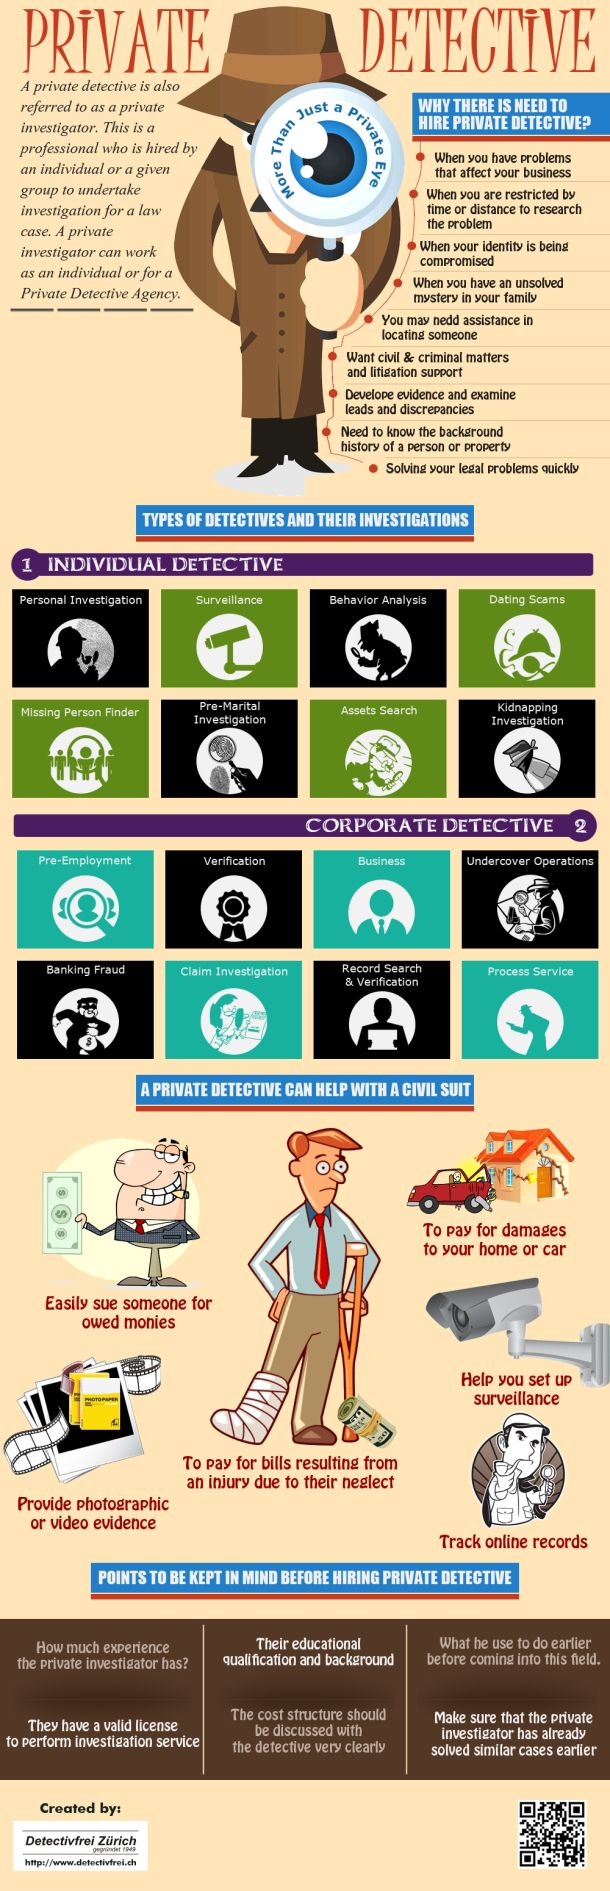 Psychology-Infographic-Private-Detective-EyeSpy-www.eyespyinvesti...-888-393-7799 Psychology Infographic : Private Detective[INFOGRAPHIC]